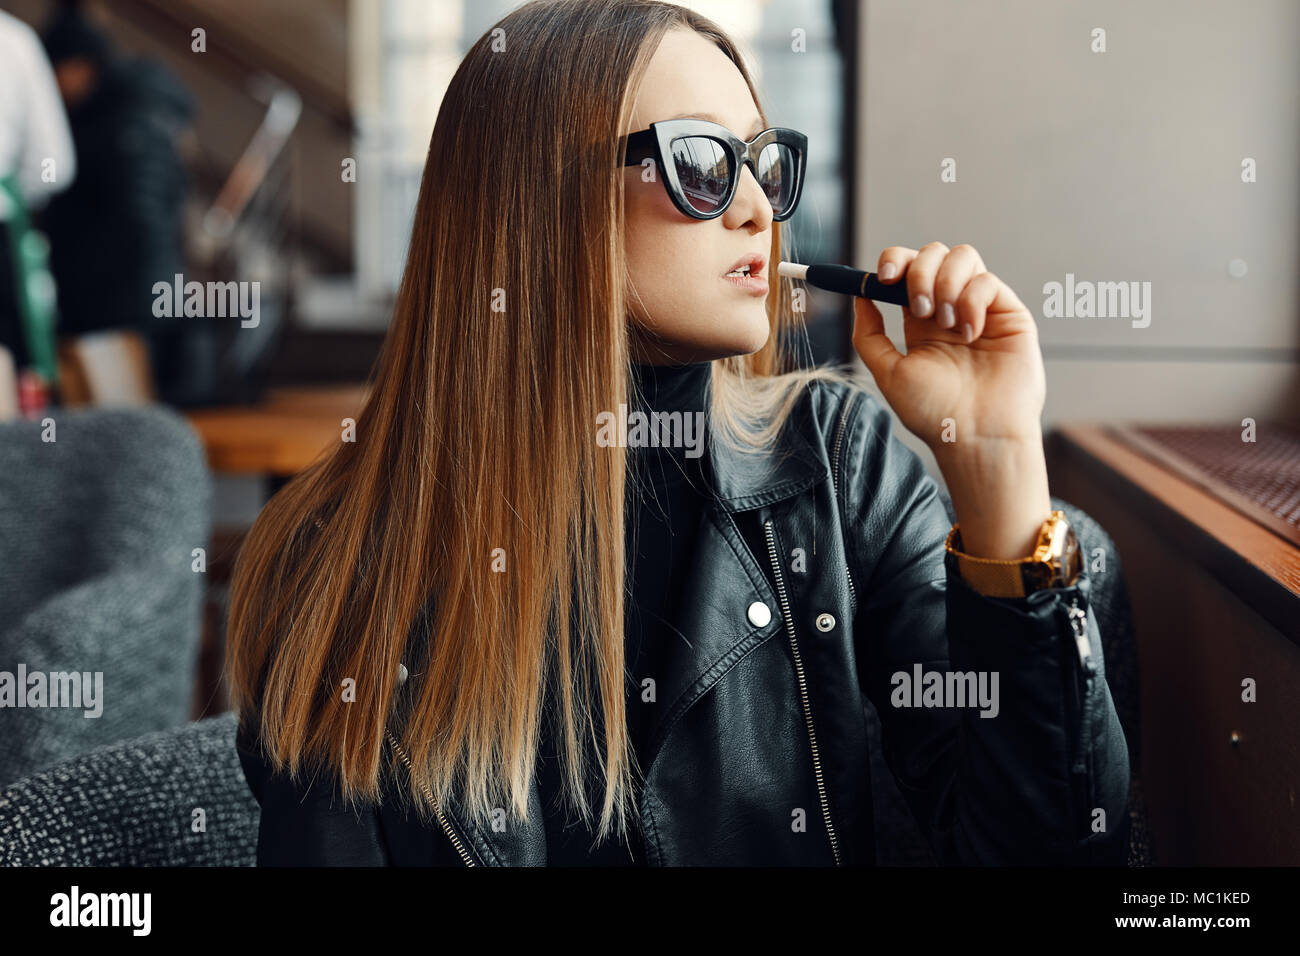 Girl sit in caffee place and smoke electronic cigarette wear glasses - Stock Image